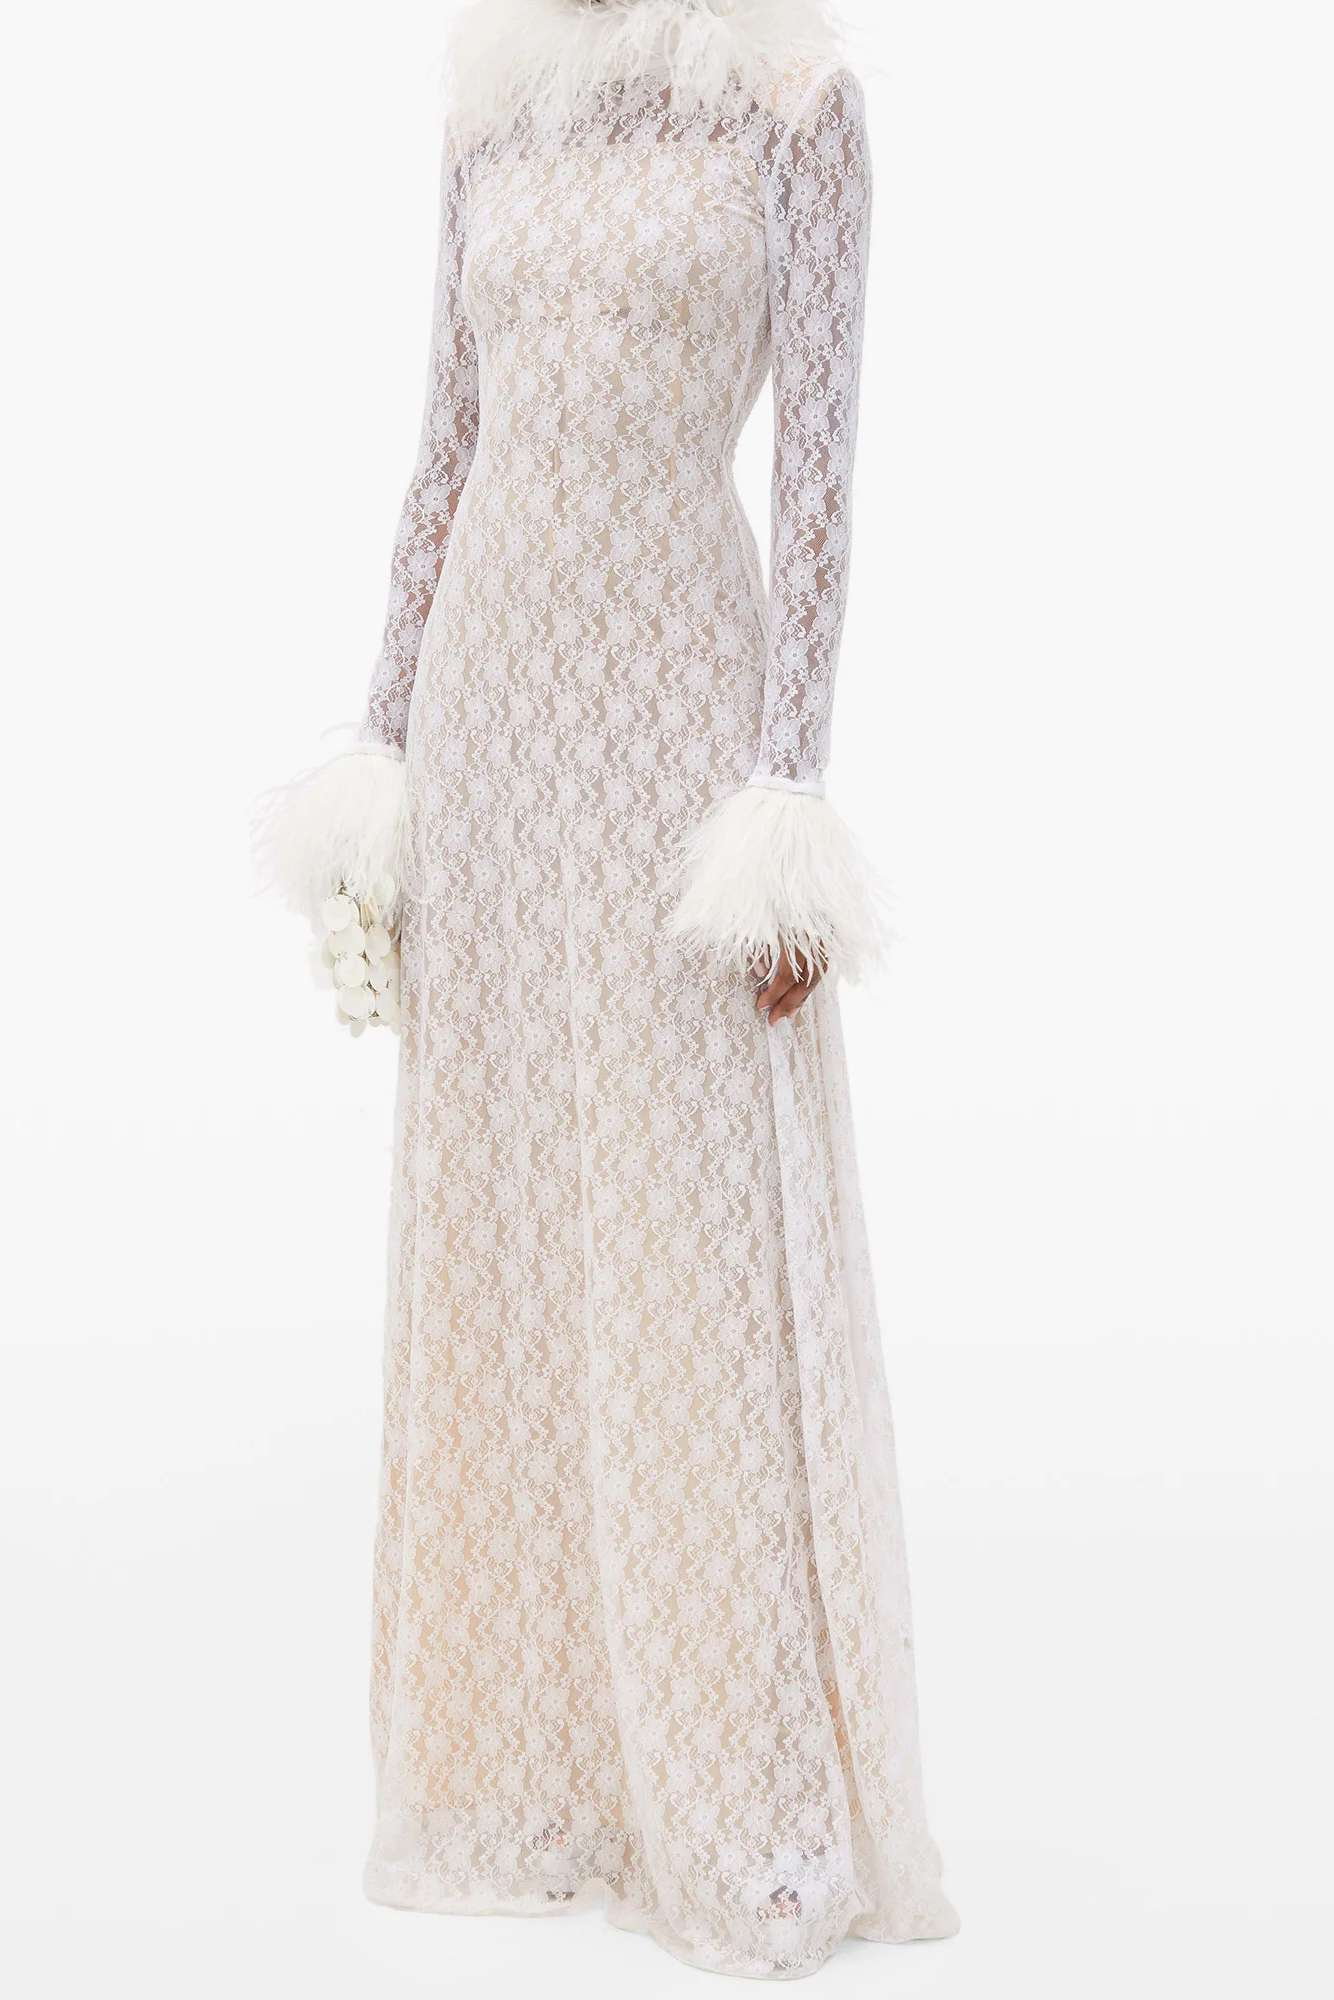 Feather-trimmed Chantilly-lace gown